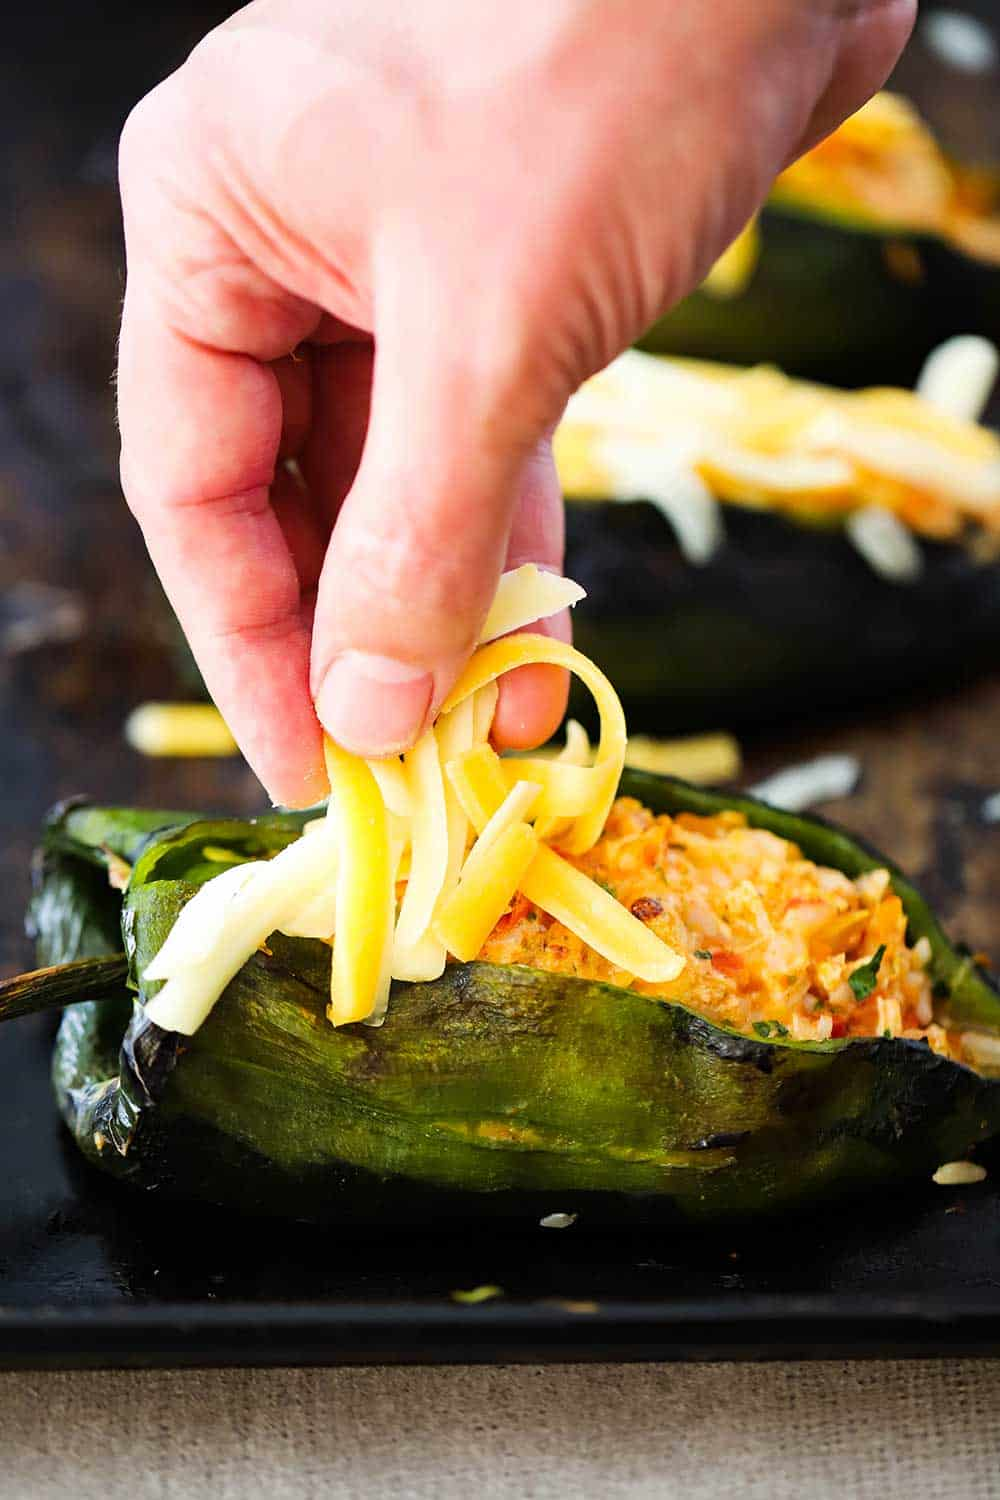 A hand sprinkling shredded cheddar cheese on top of stuffed poblanos on a baking sheet.